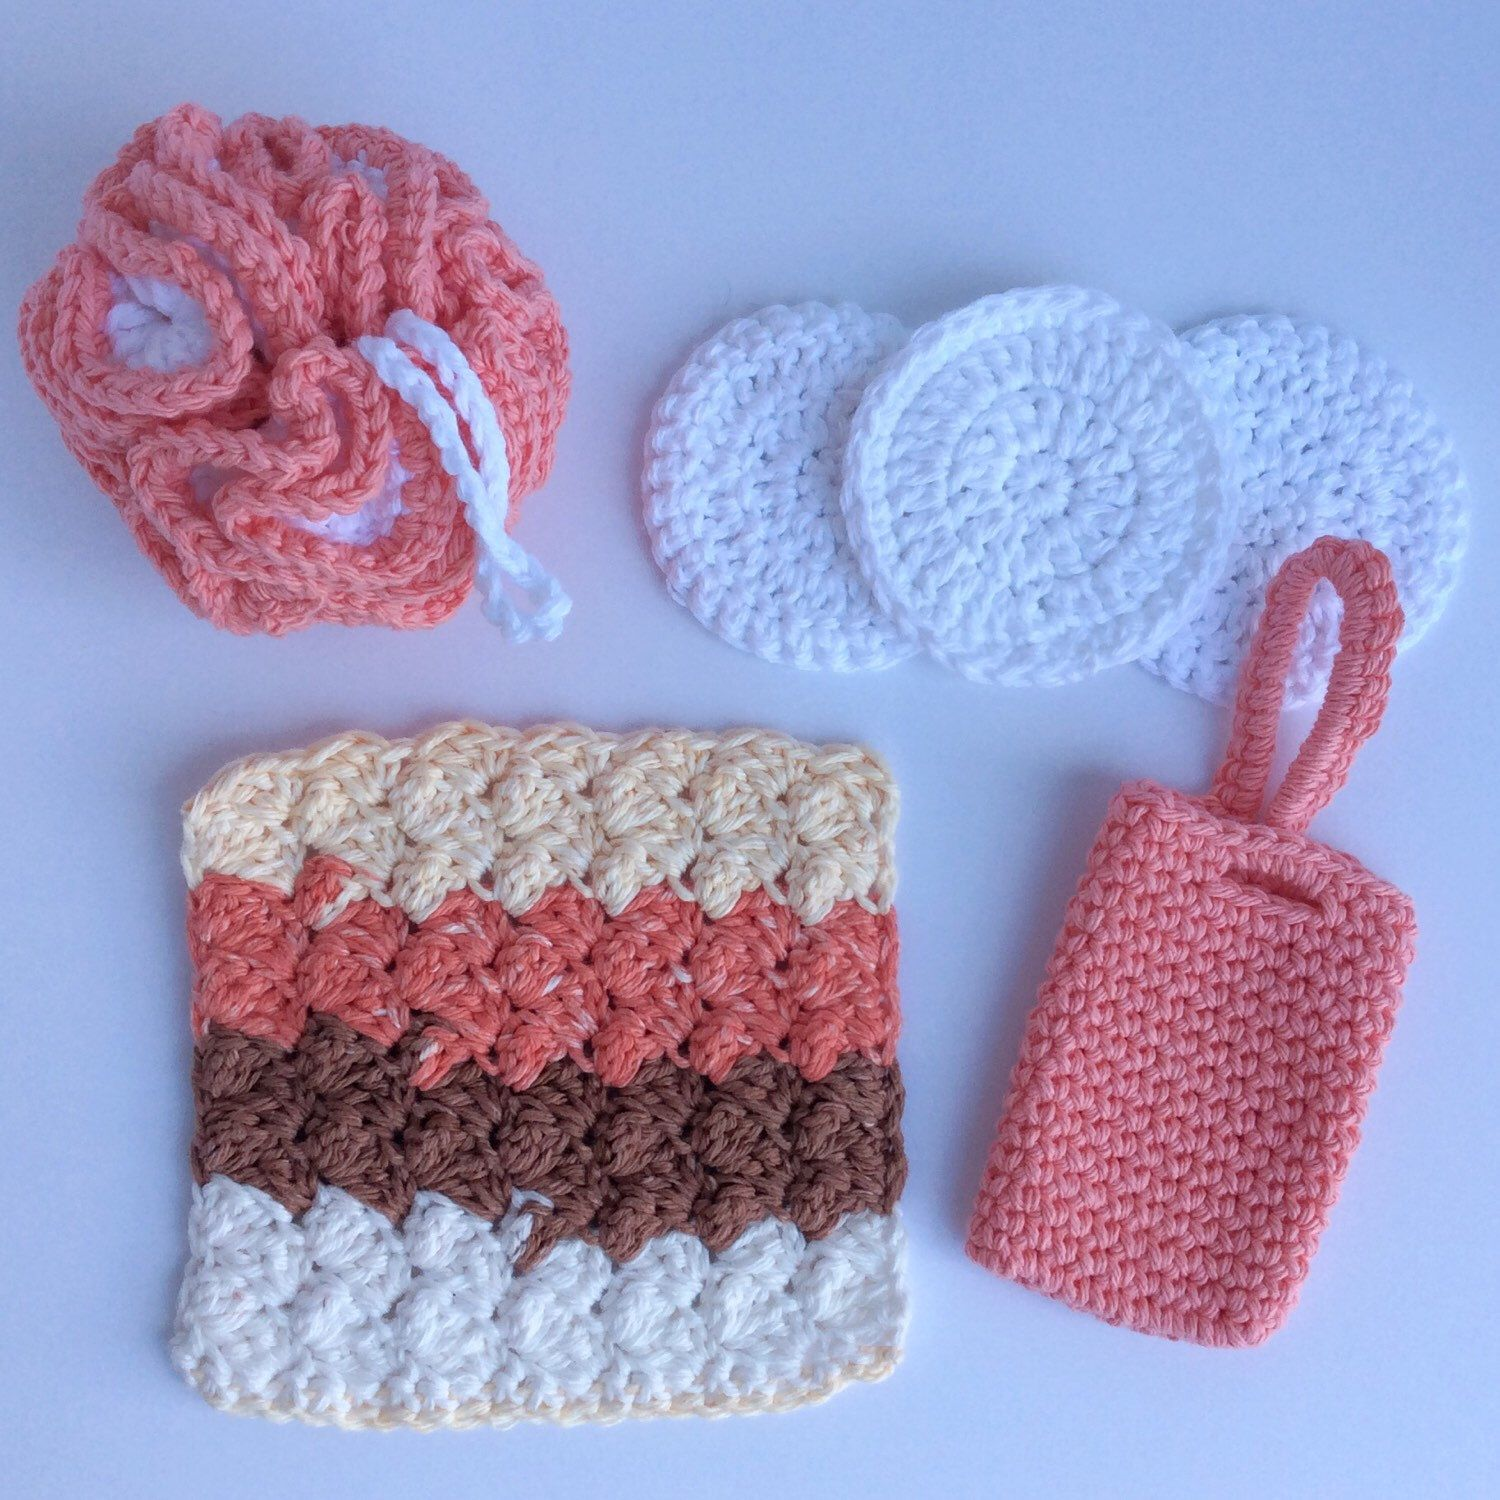 Crochet Spa Bundle, Cotton Spa Set, Pink Spa Set, Crochet Bath Set ...